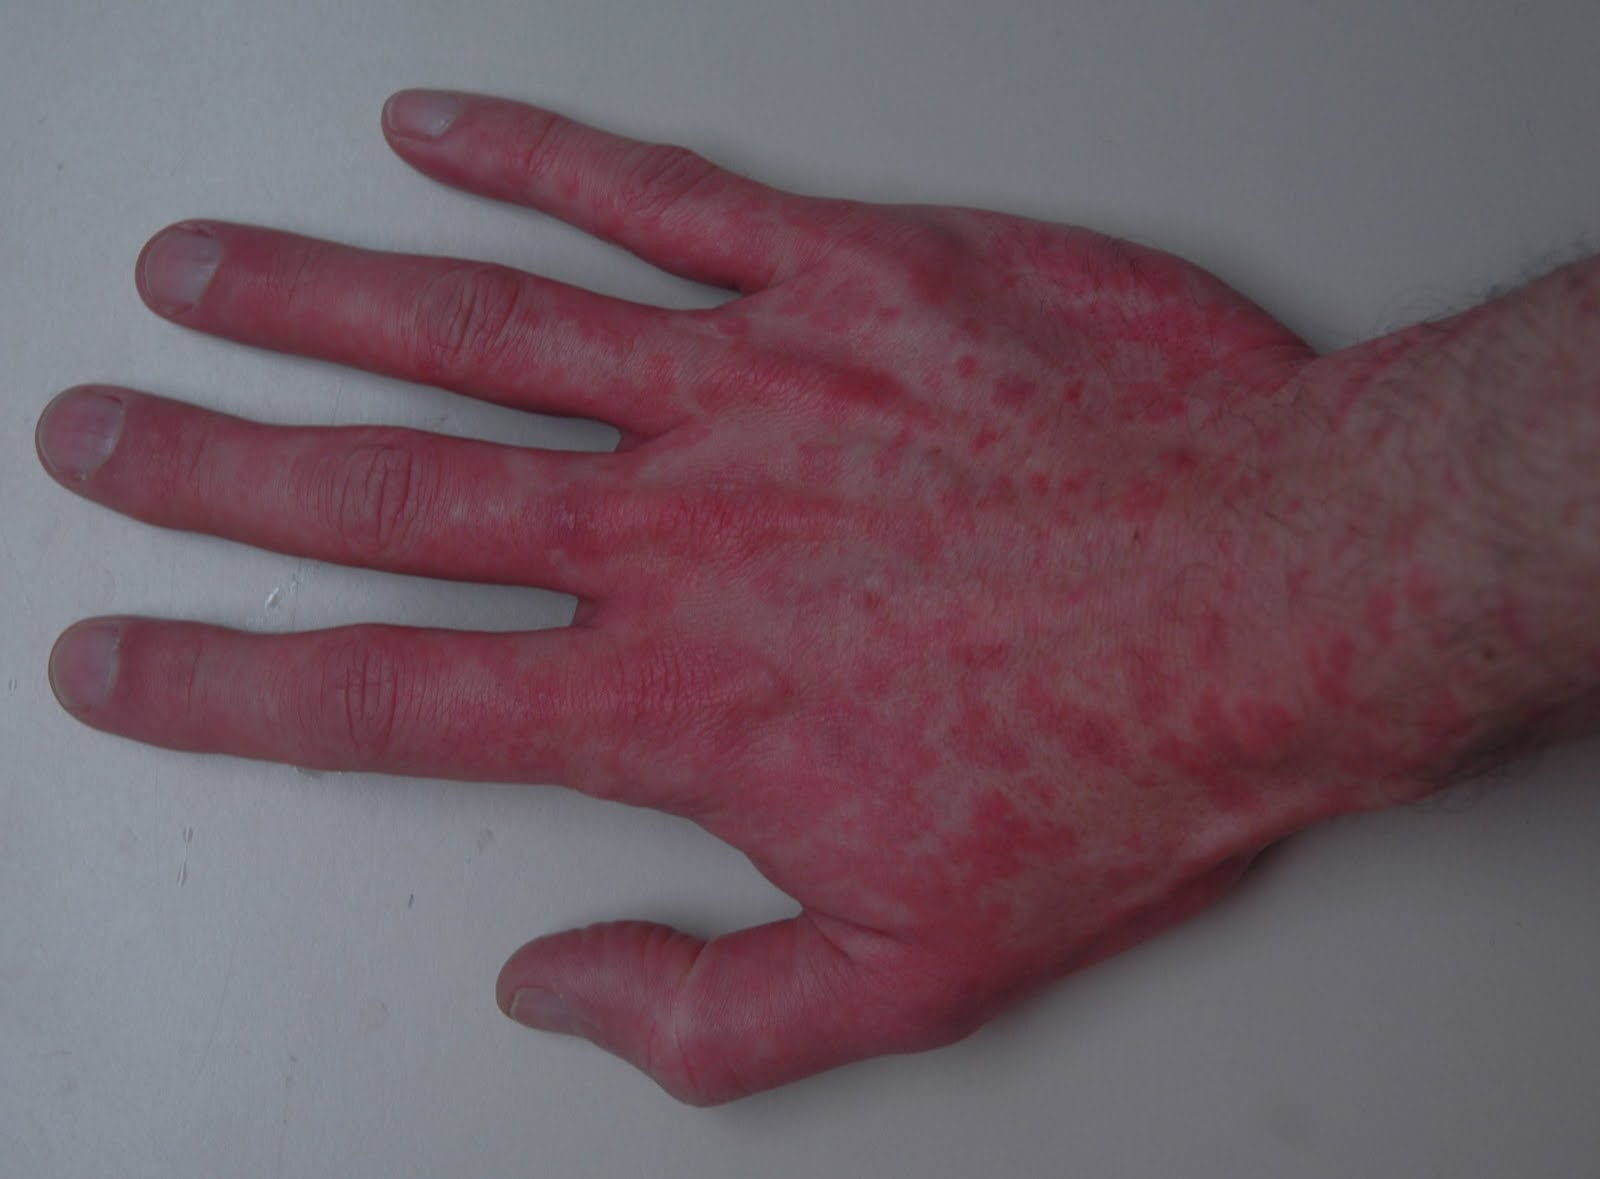 What causes reddened hands? | Reference.com